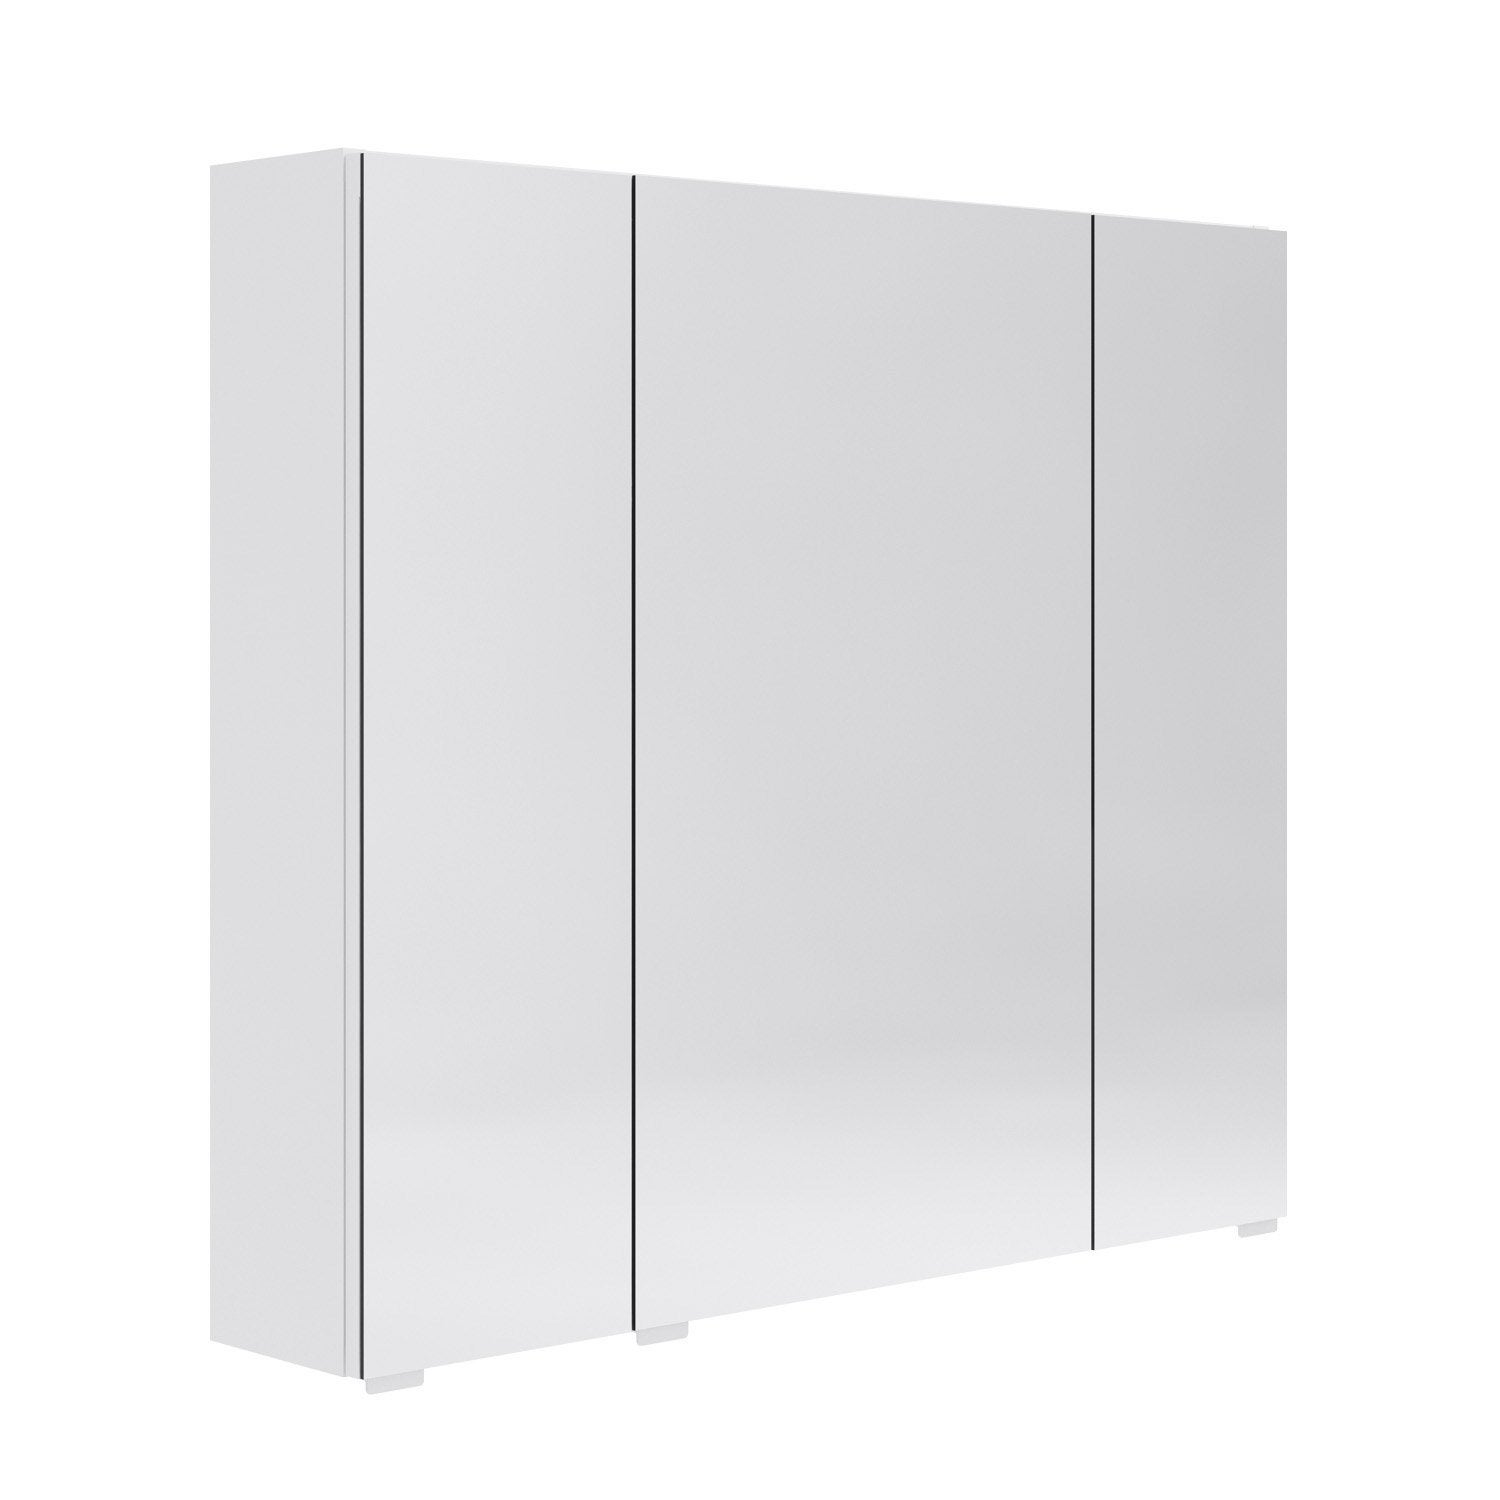 armoire de toilette l 80 cm blanc opale leroy merlin. Black Bedroom Furniture Sets. Home Design Ideas